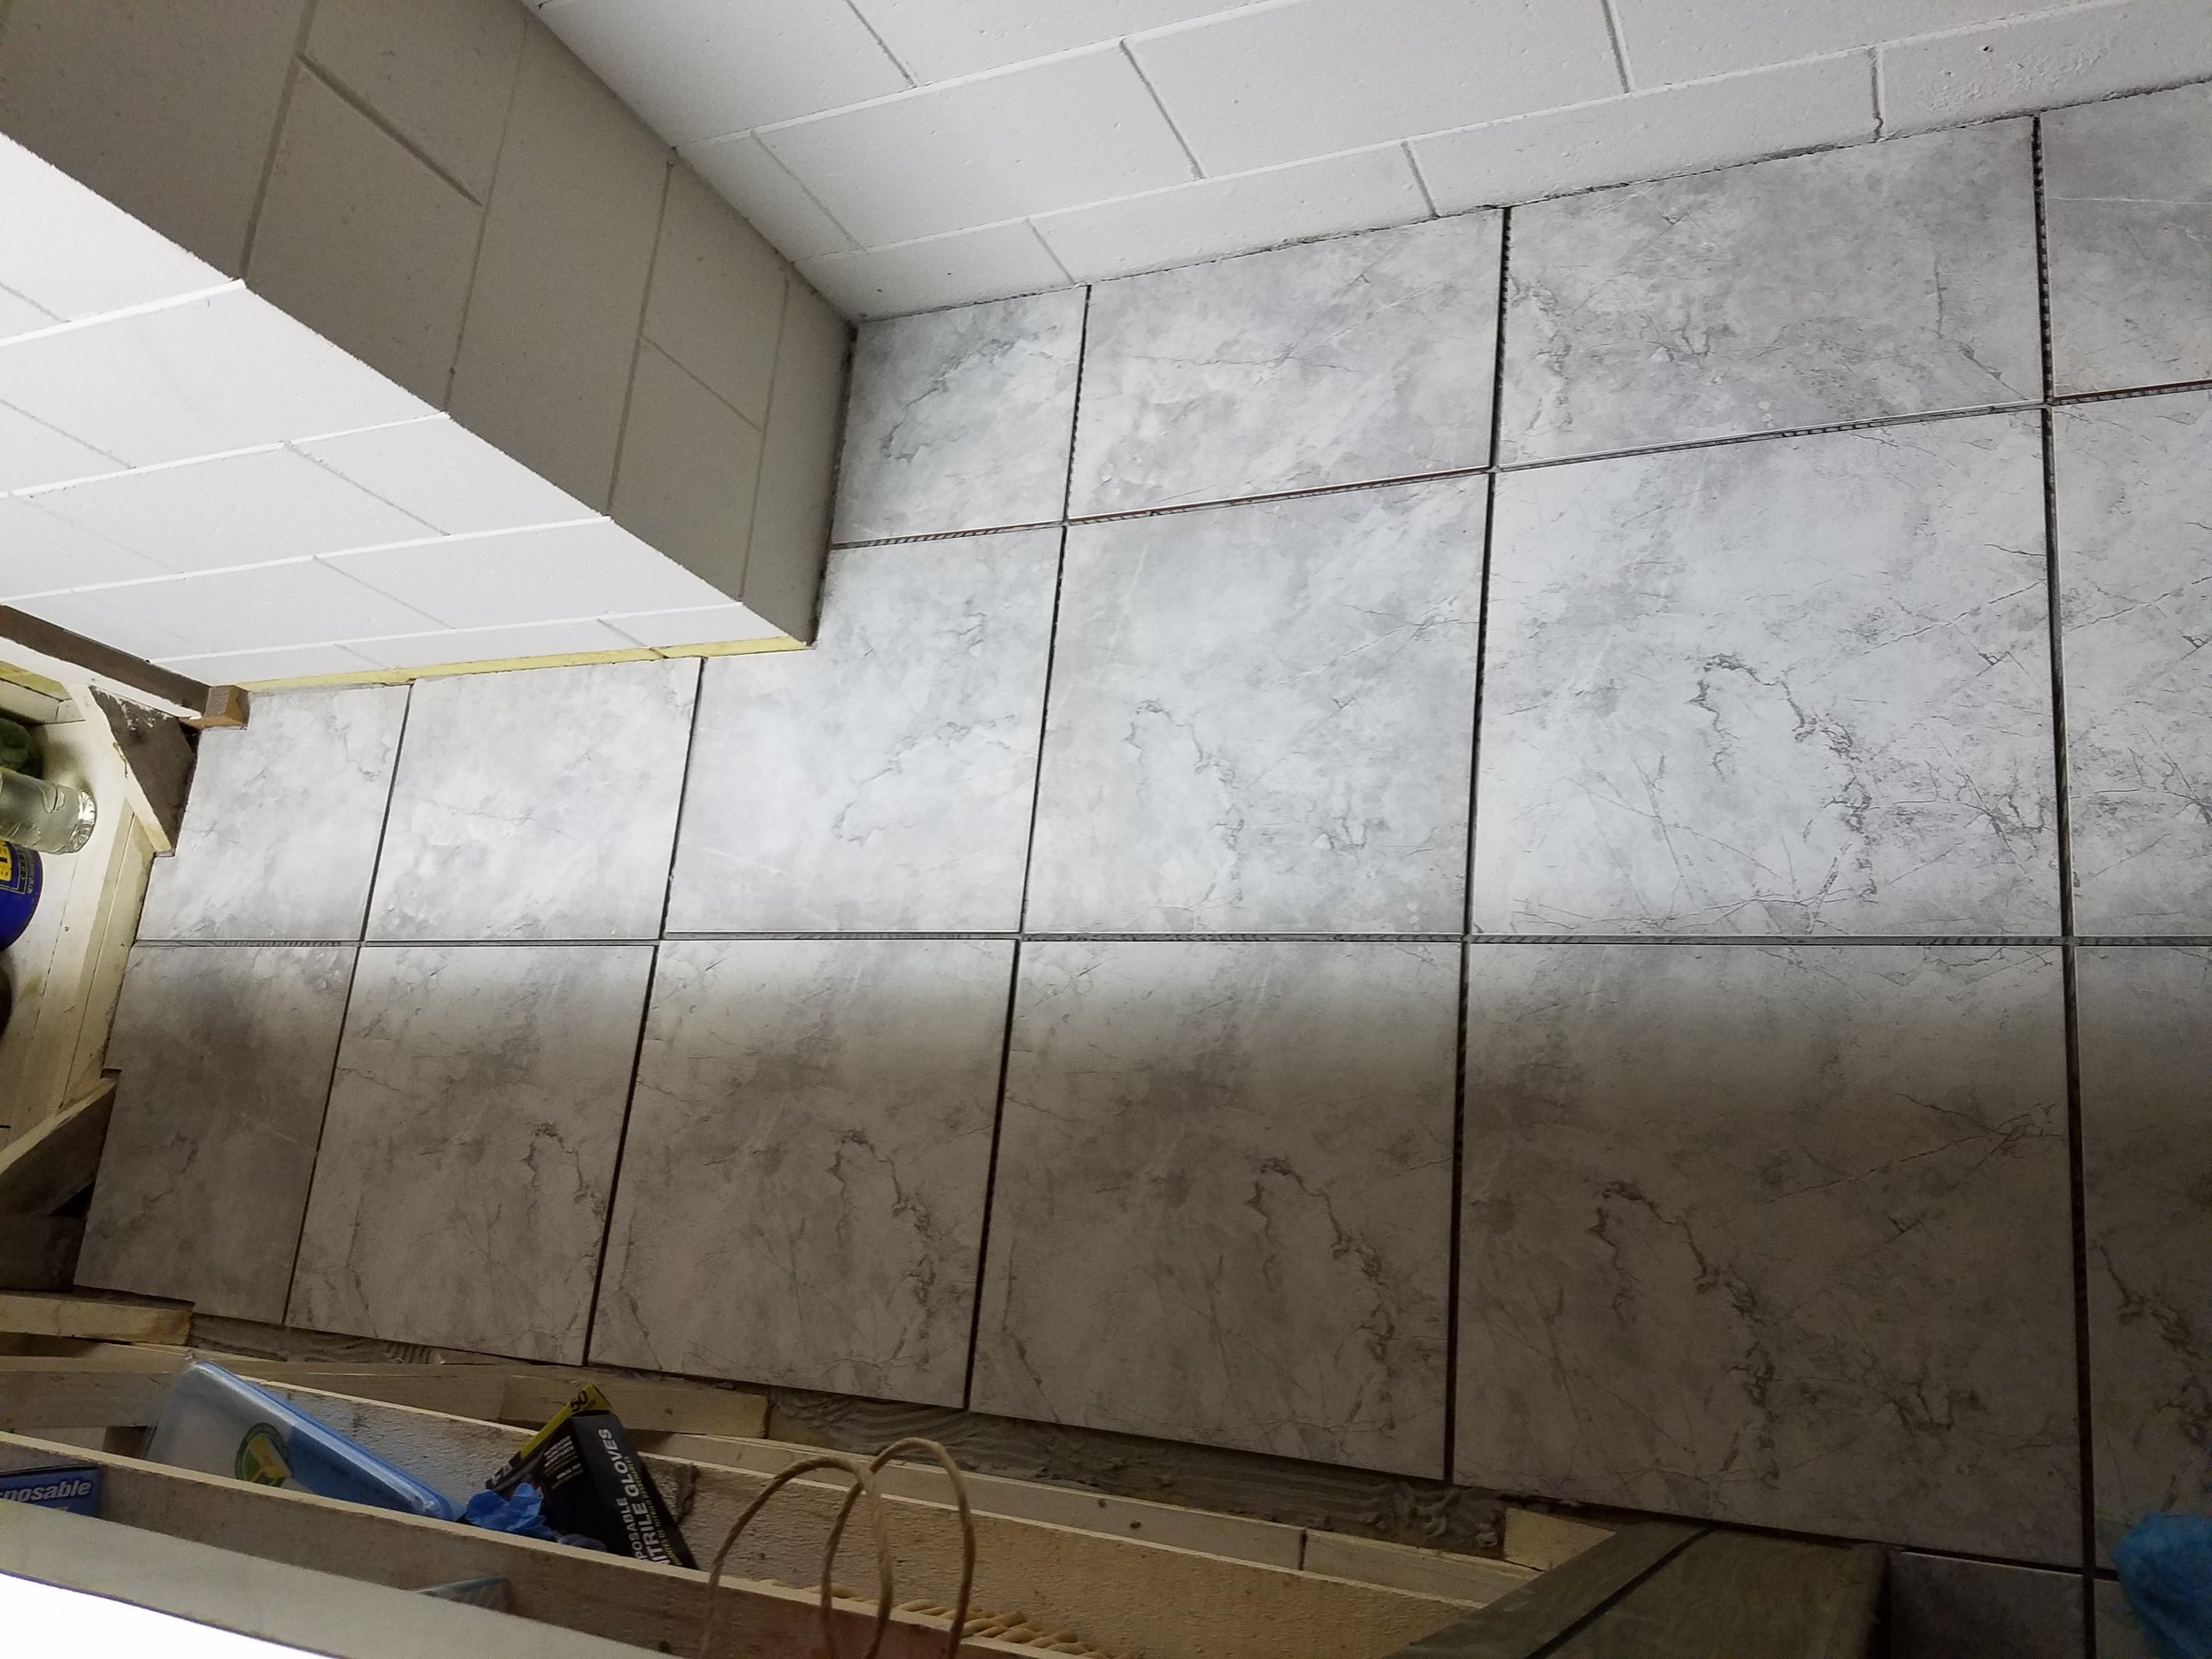 Tiles waiting to be grouted behind a new bar installation.